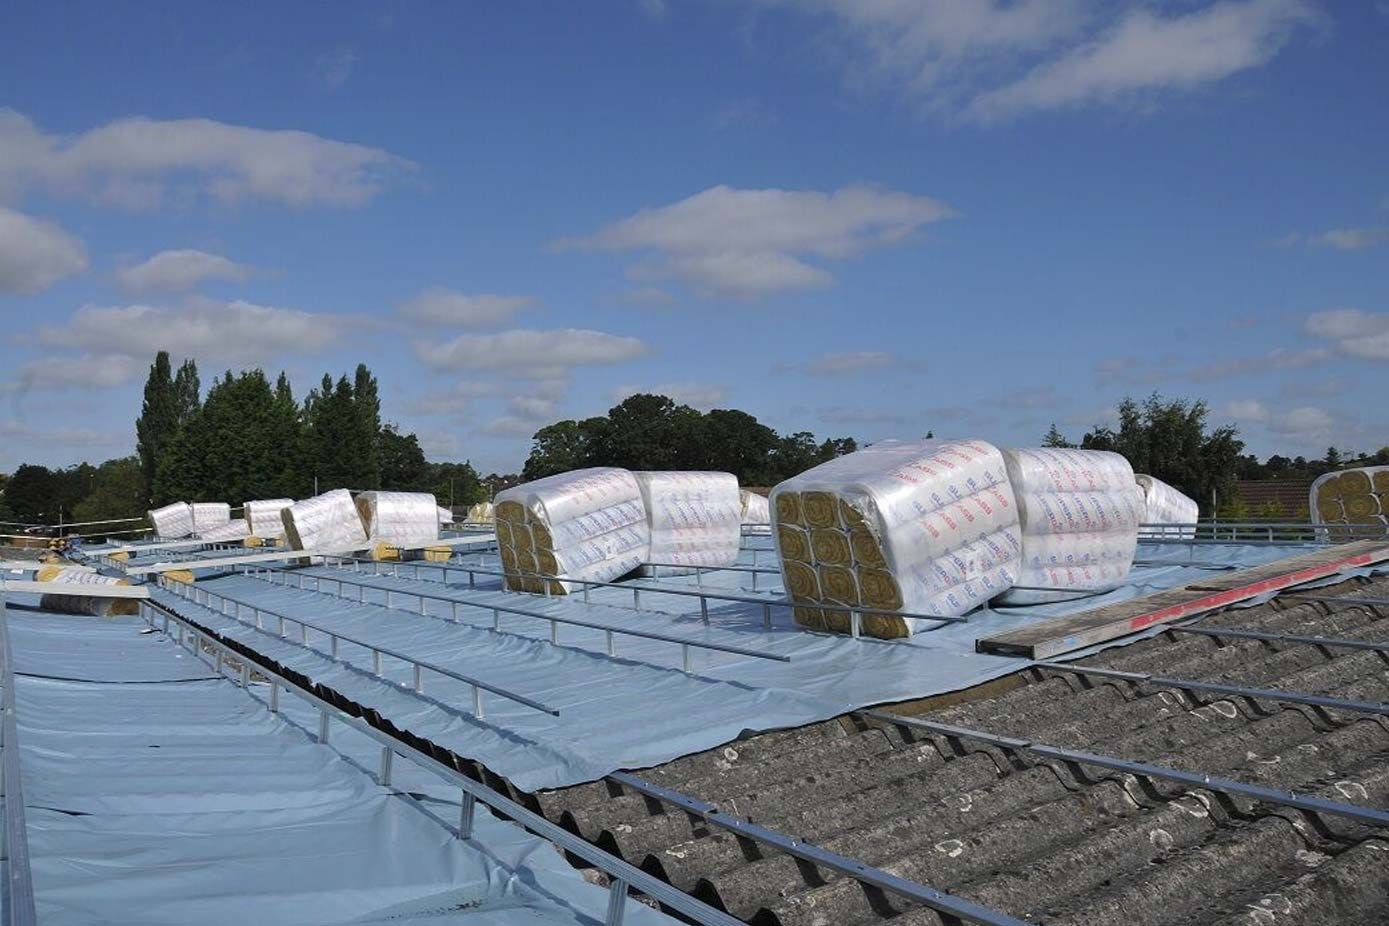 Roof refurbishment by Sage Roofing in progress